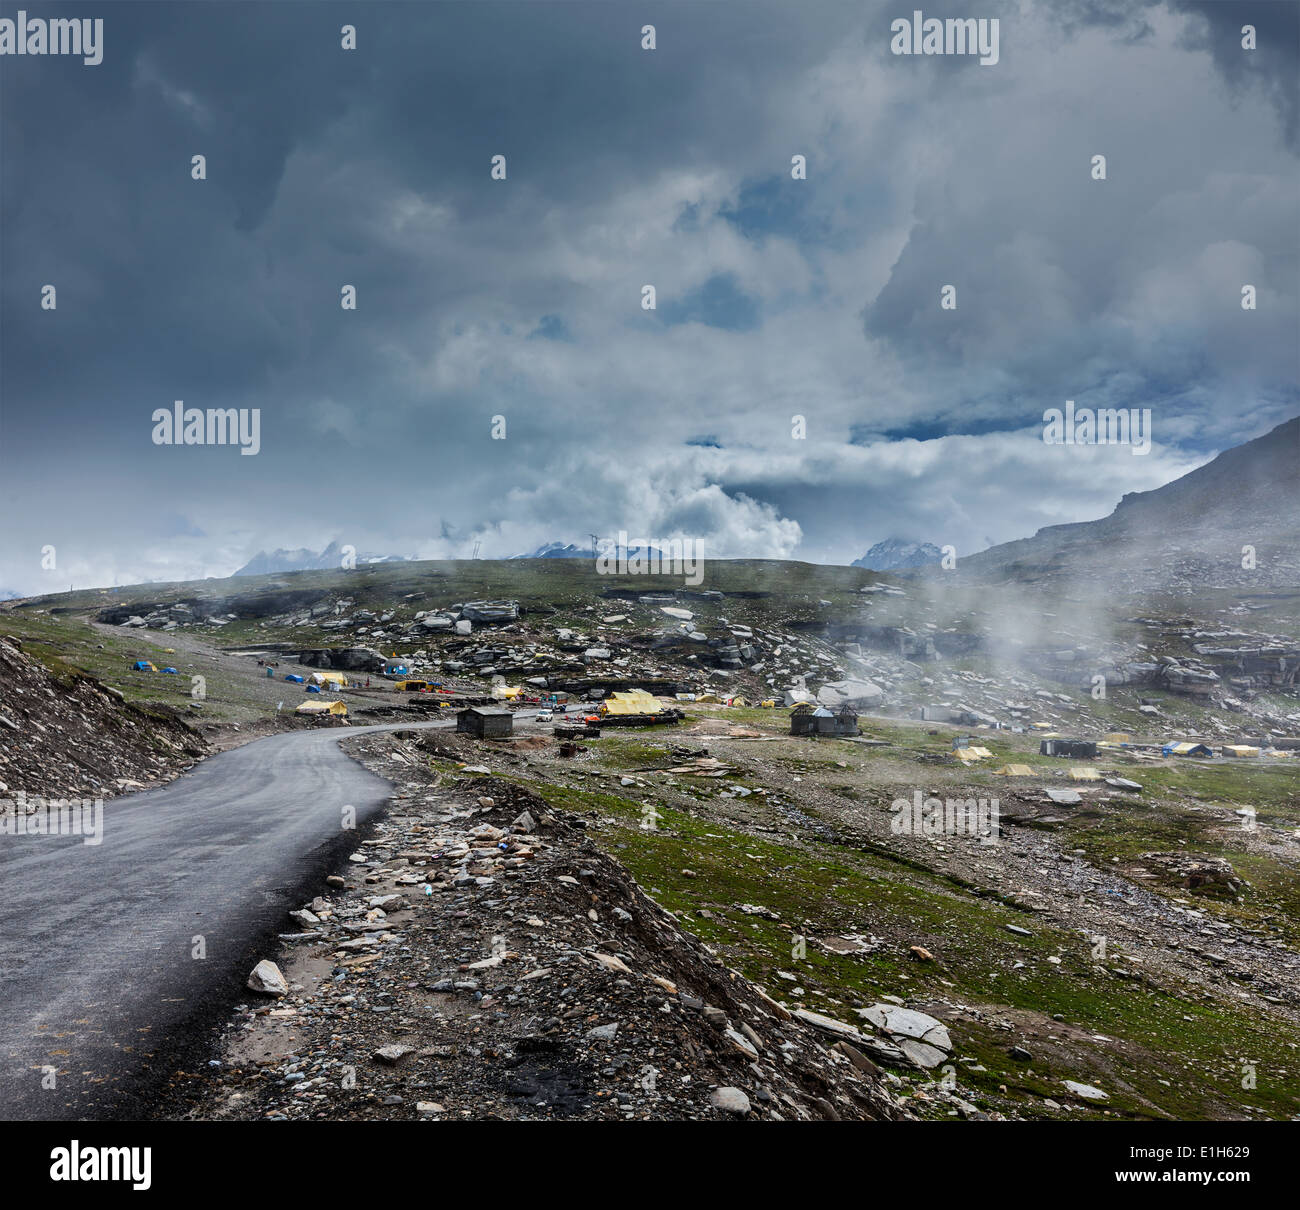 Road in Himalayas on top of Rohtang La pass, Himachal Pradesh, India - Stock Image